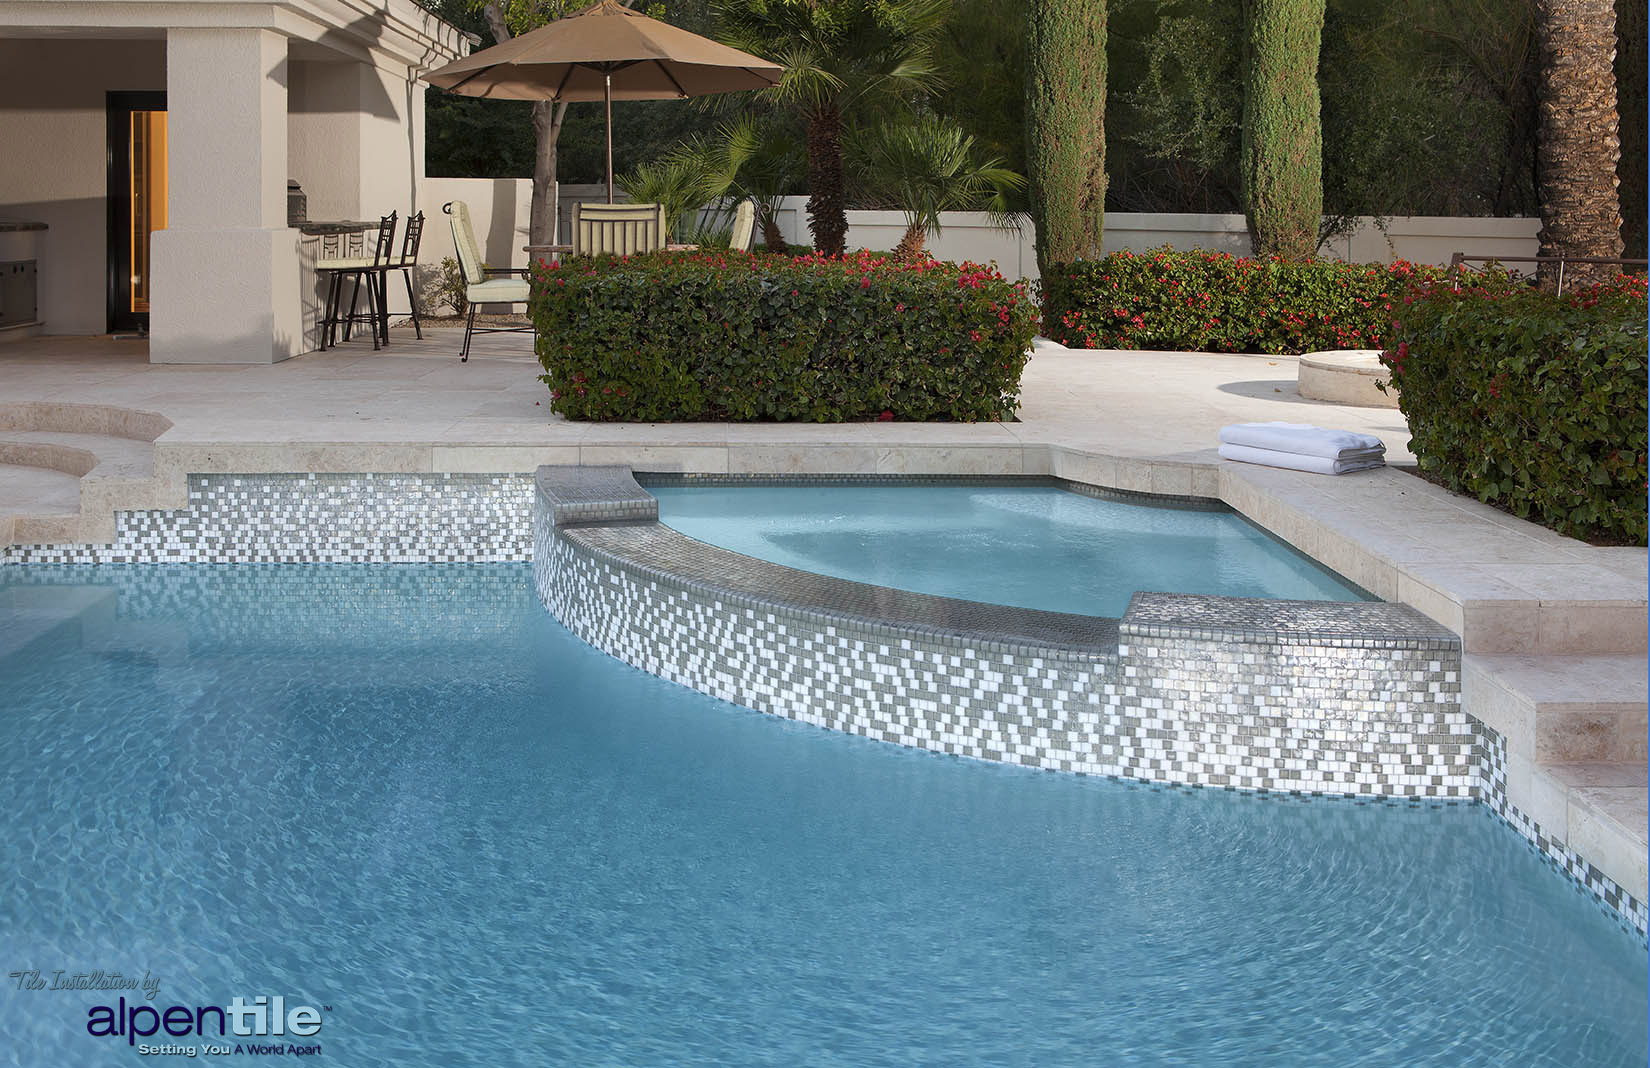 Alpentile Glass Mosaic Swimming Pool Designs : Alpentile Glass ...